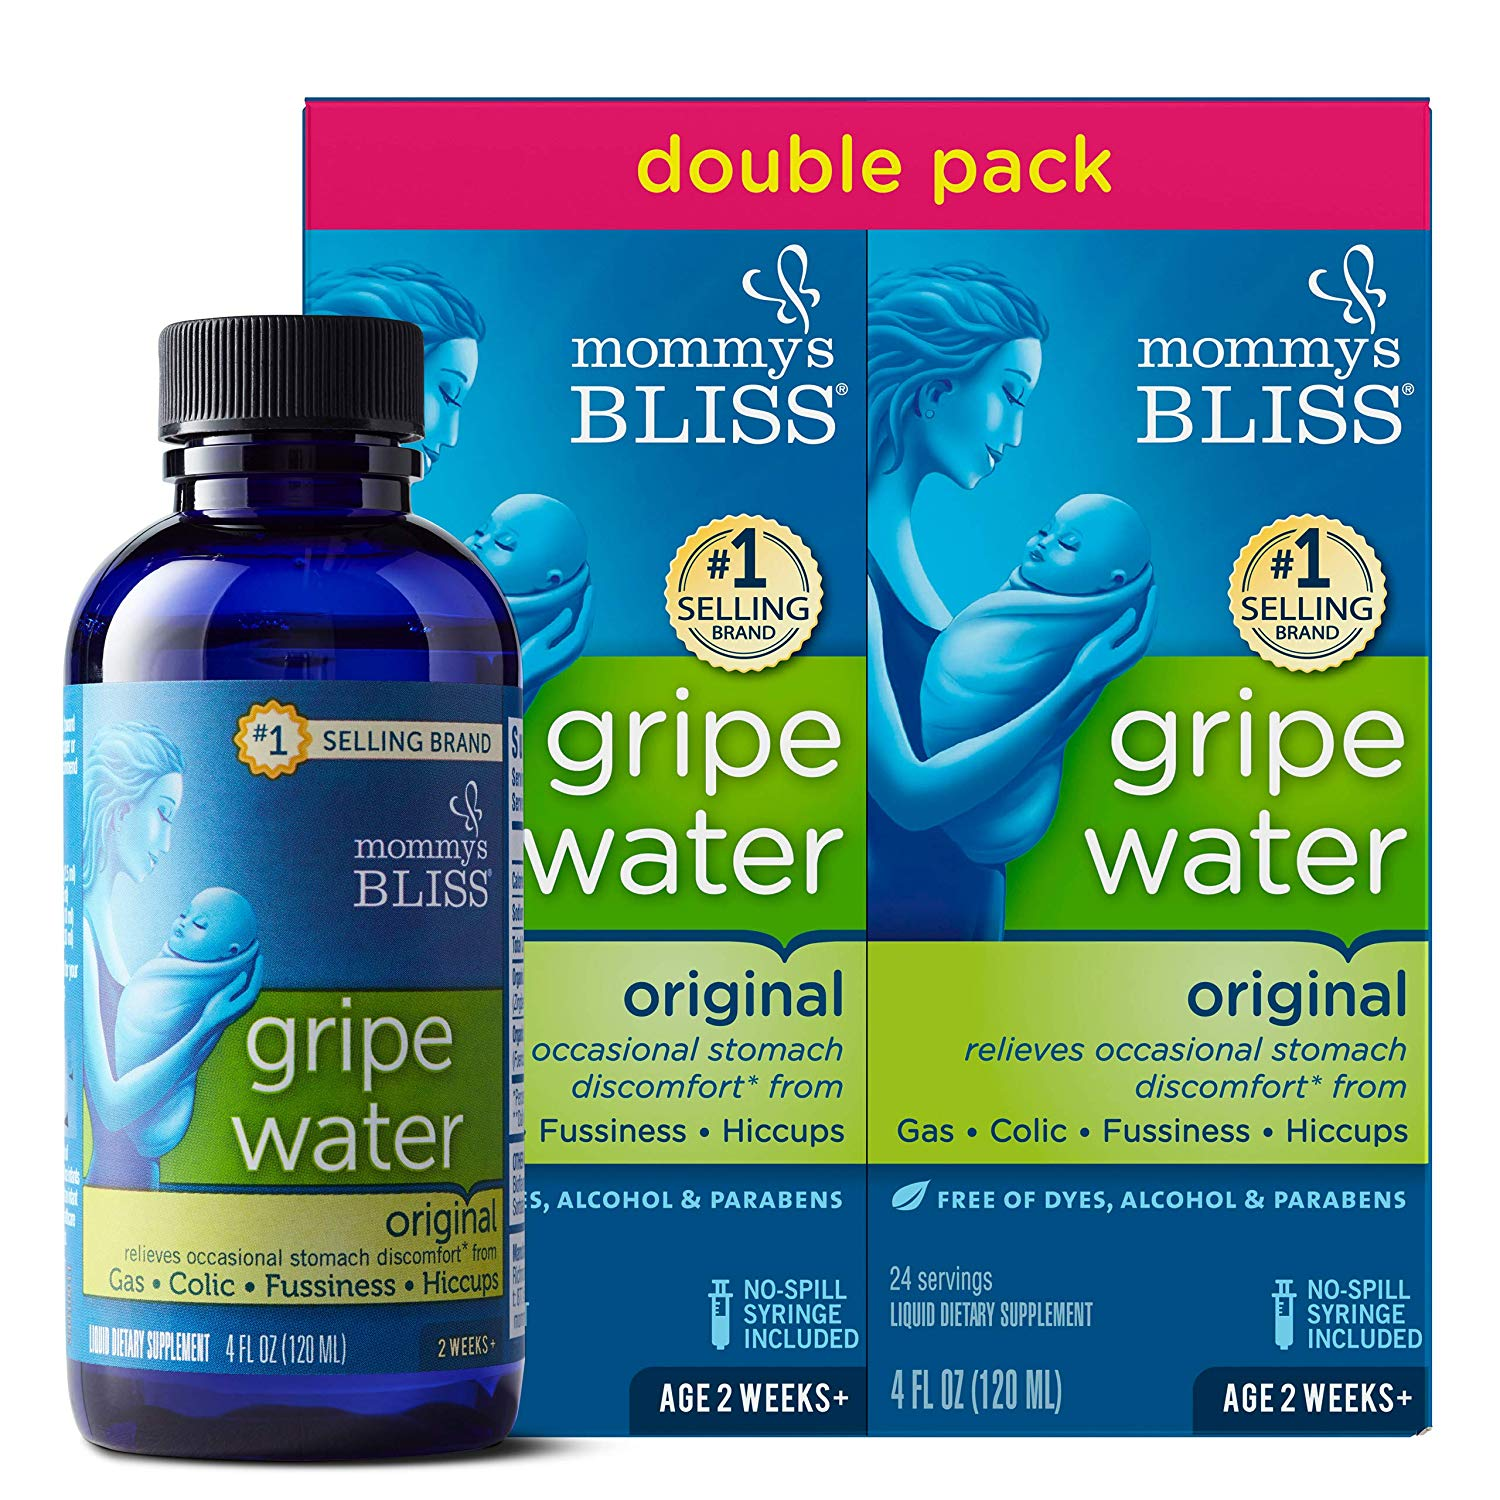 Mommy's Bliss Gripe Water Original Double Pack